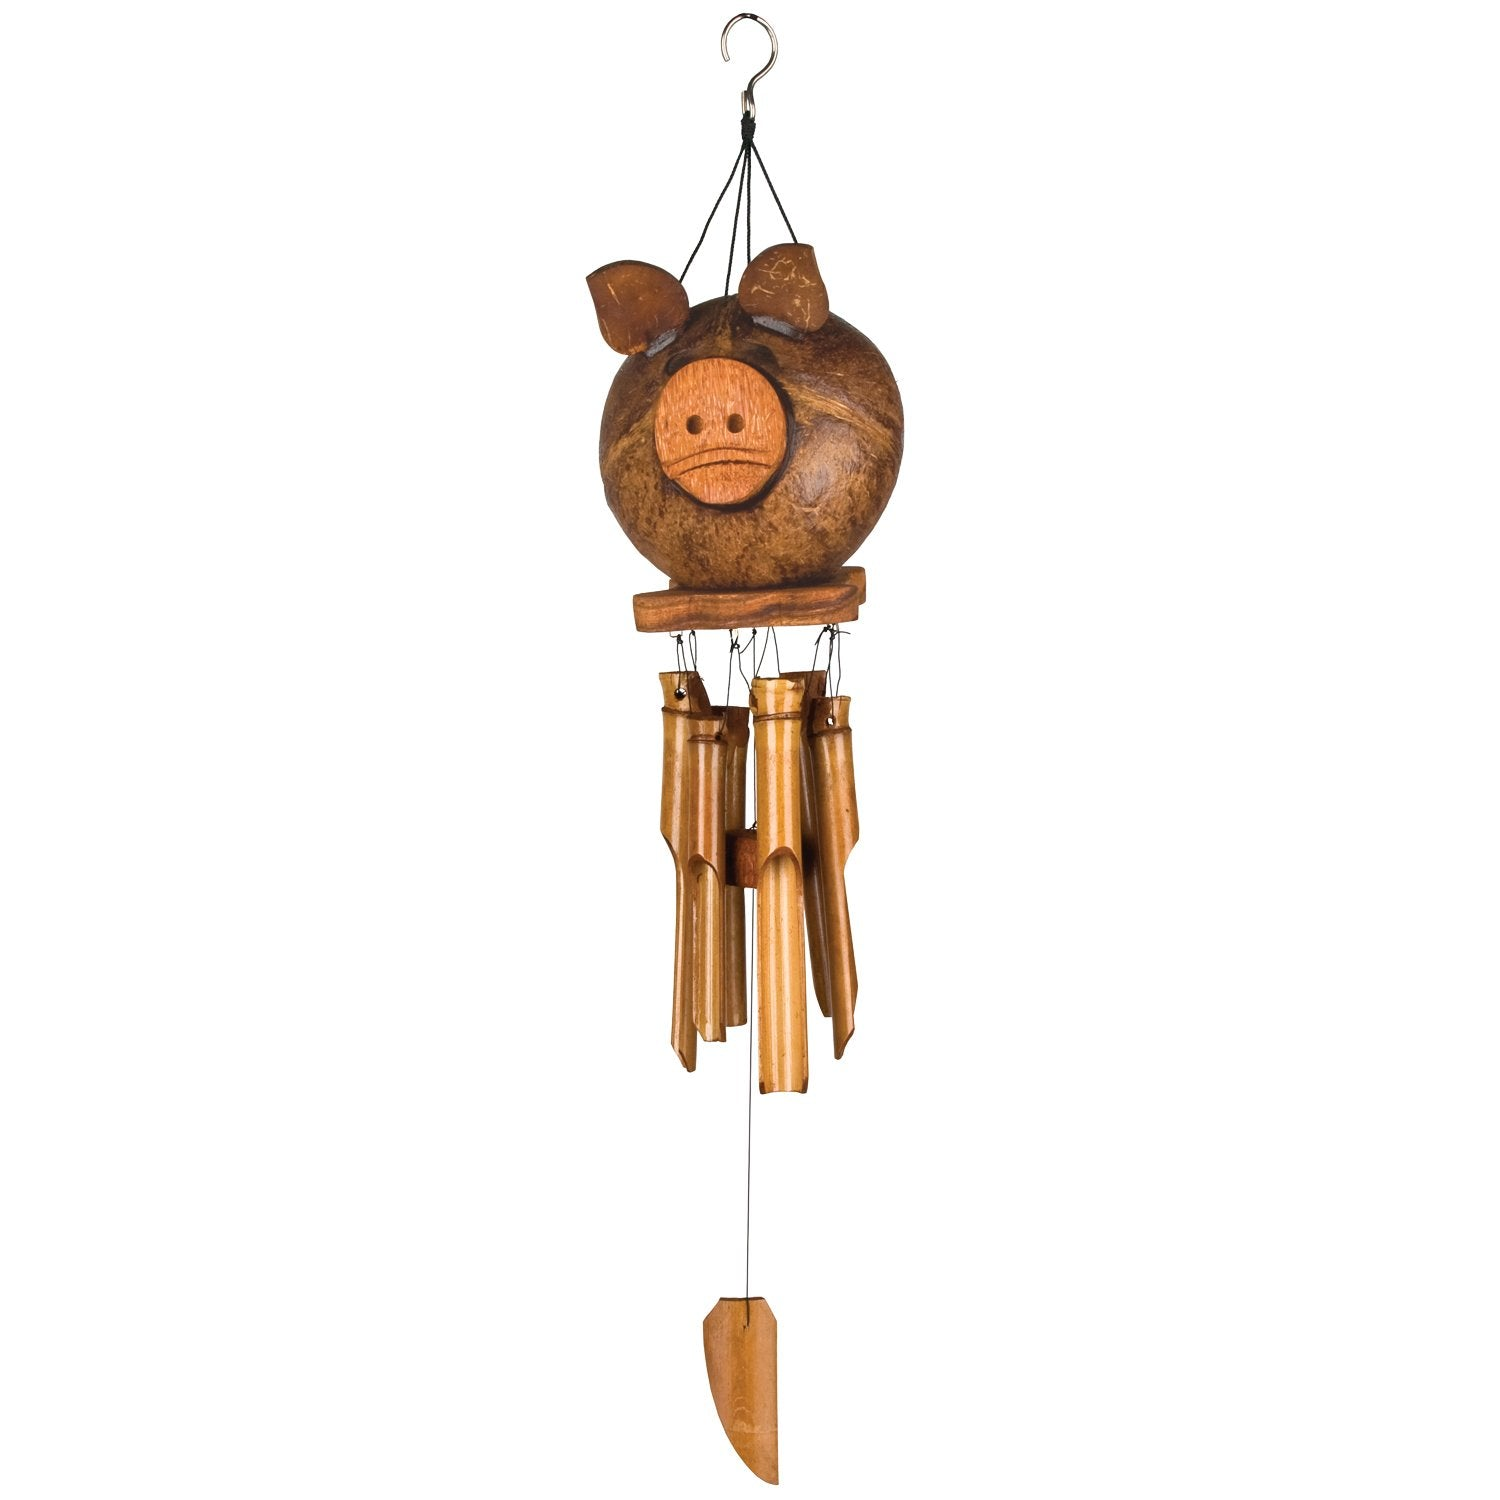 Coco Pig Bamboo Chime full product image